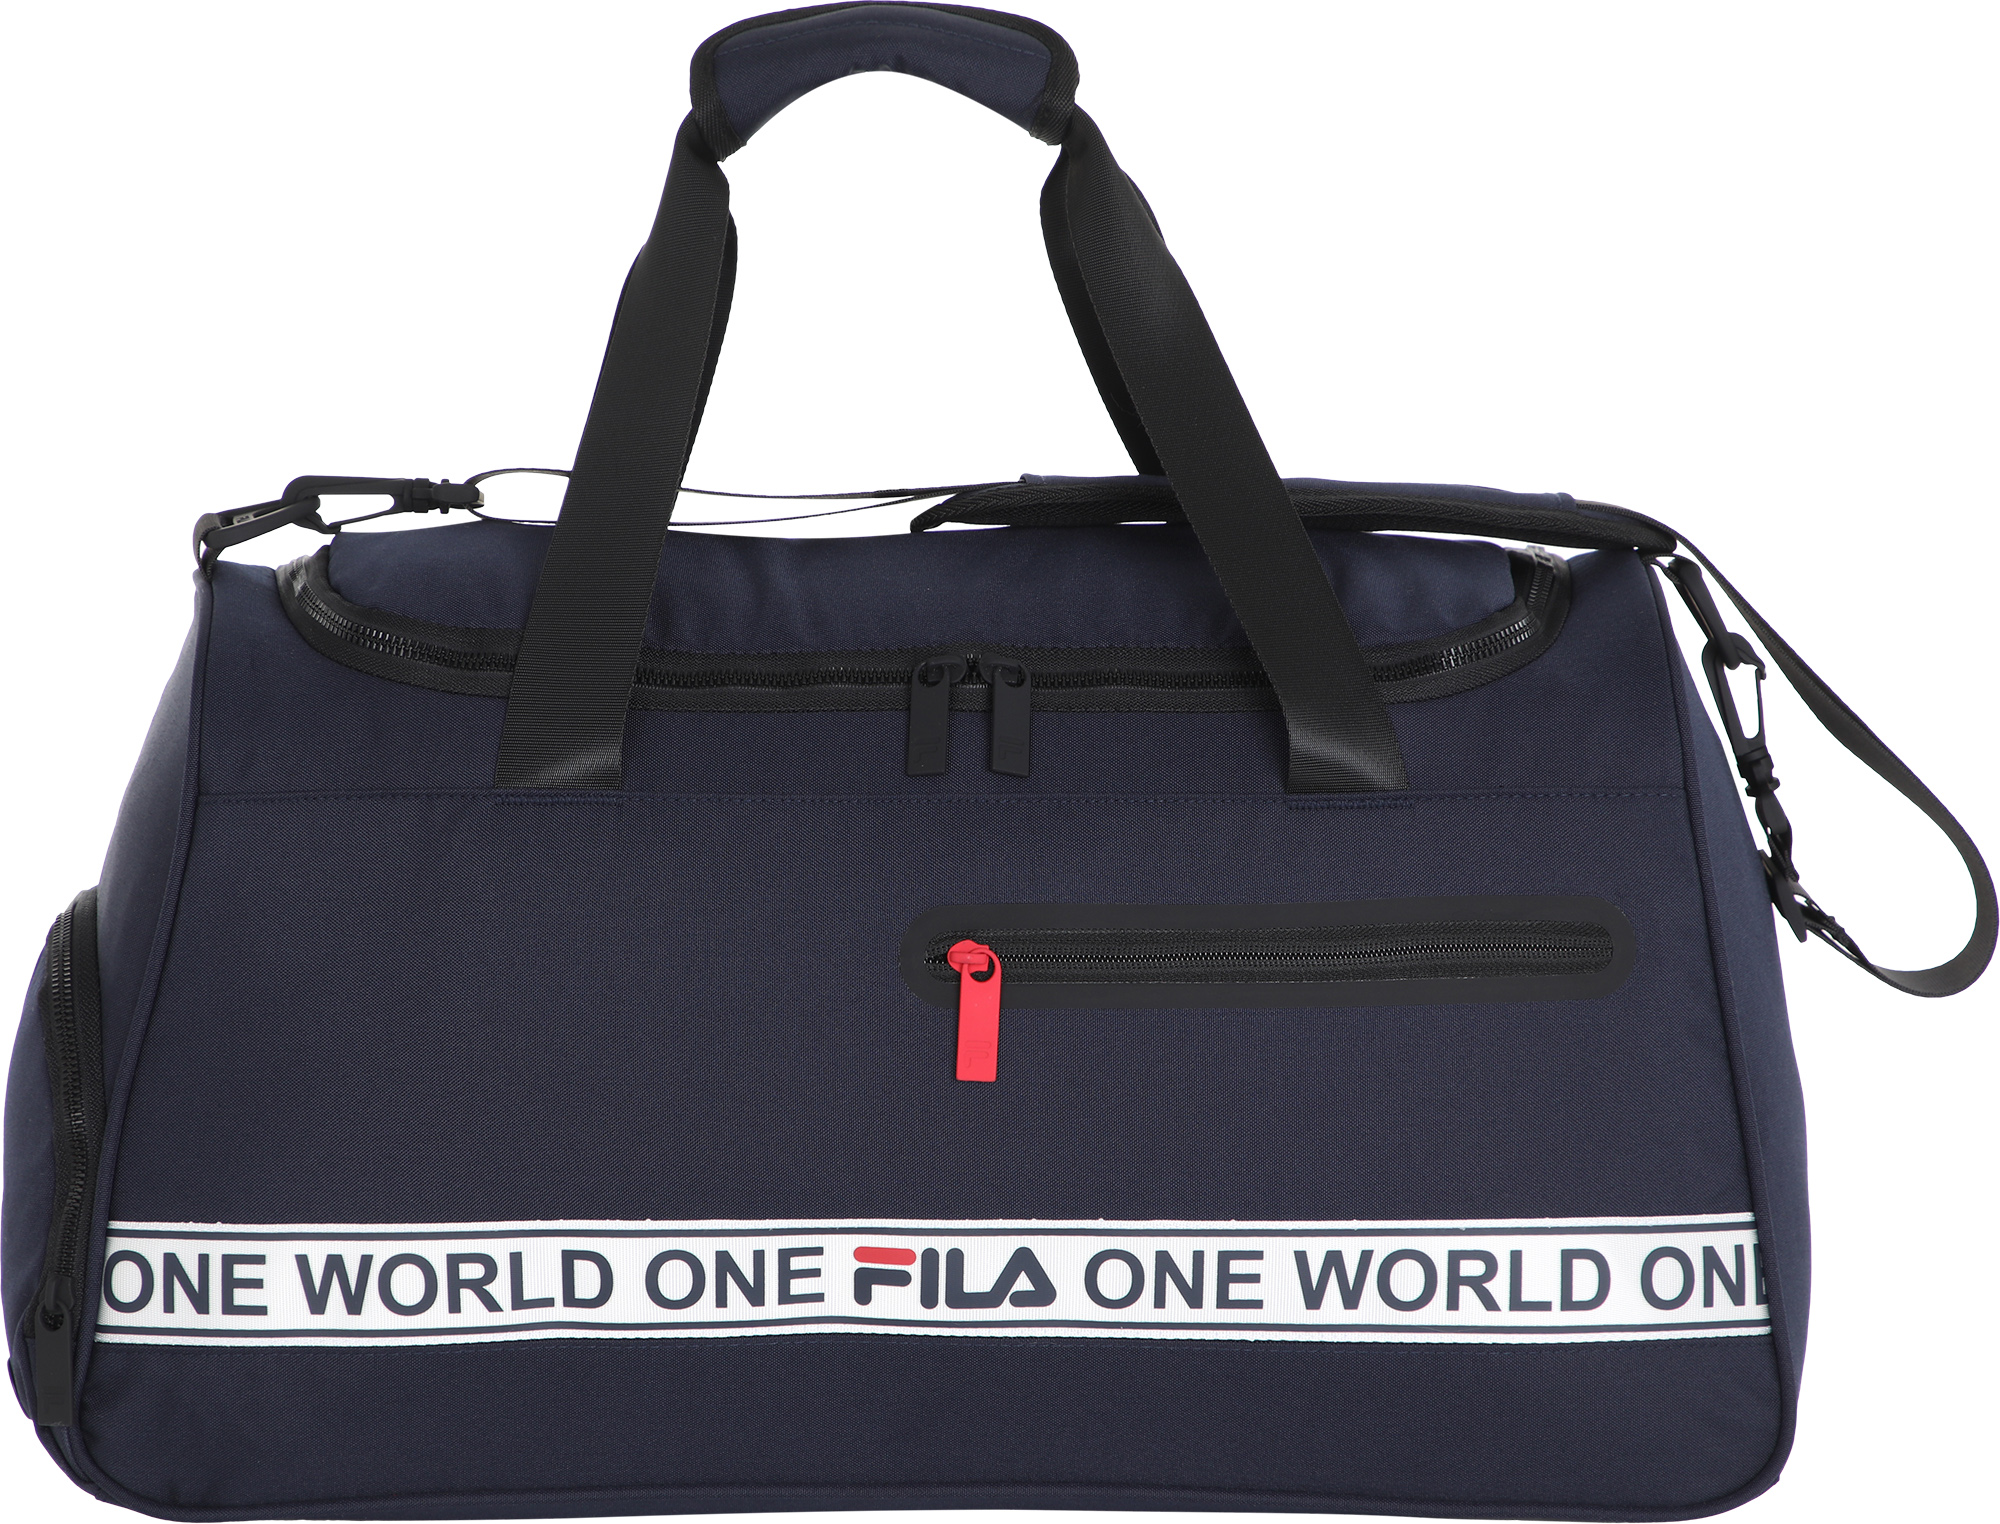 сумка спортивная fila coated bag s19aflacu01 m1 синий FILA Сумка FILA